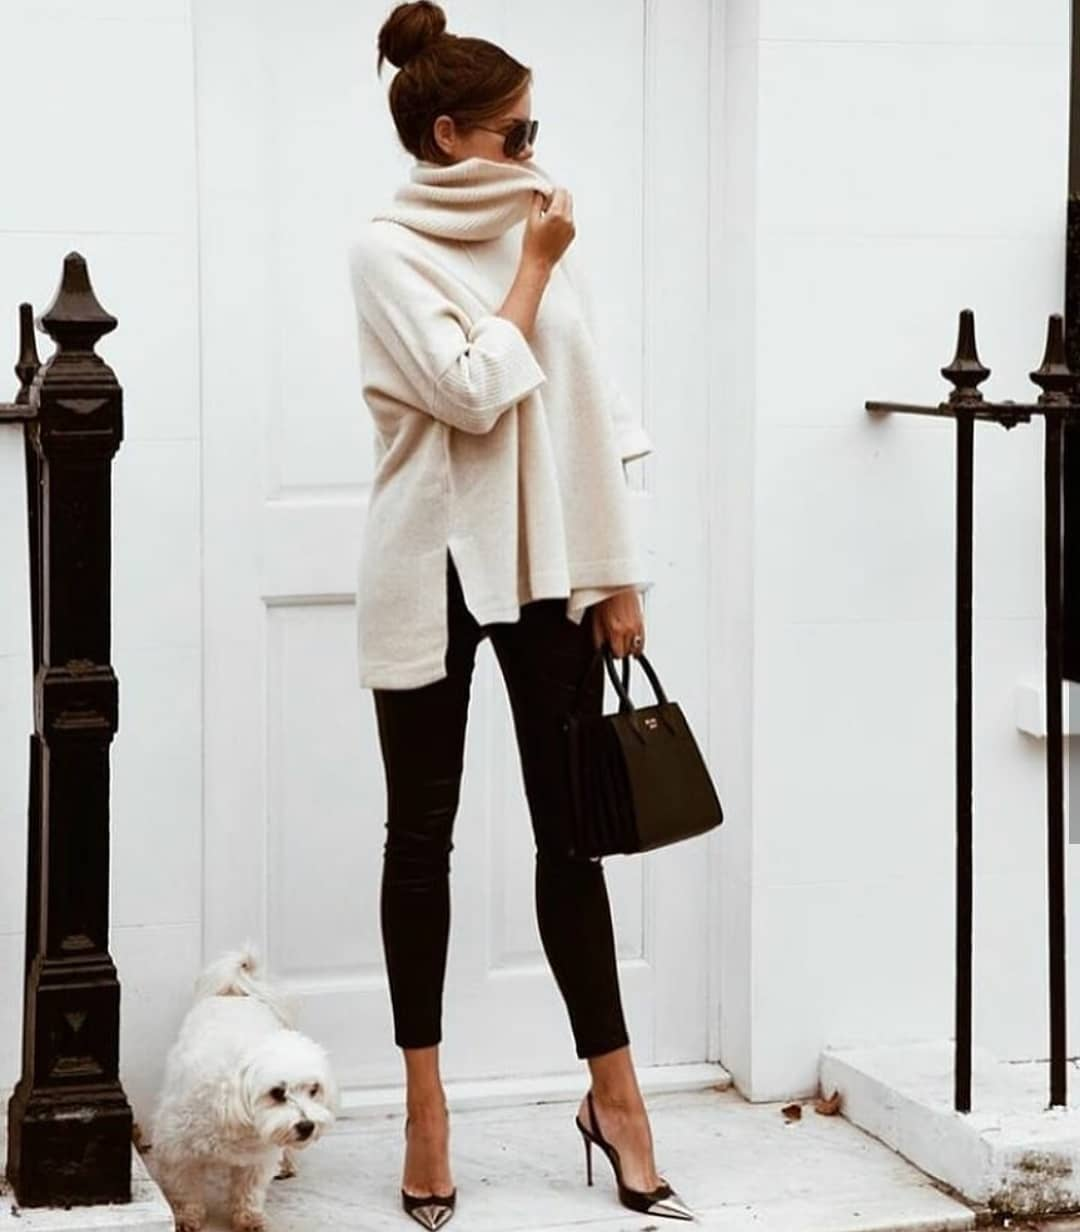 Relaxed Fit White High Neck Sweater And Black Skinny Pants For Fall 2020